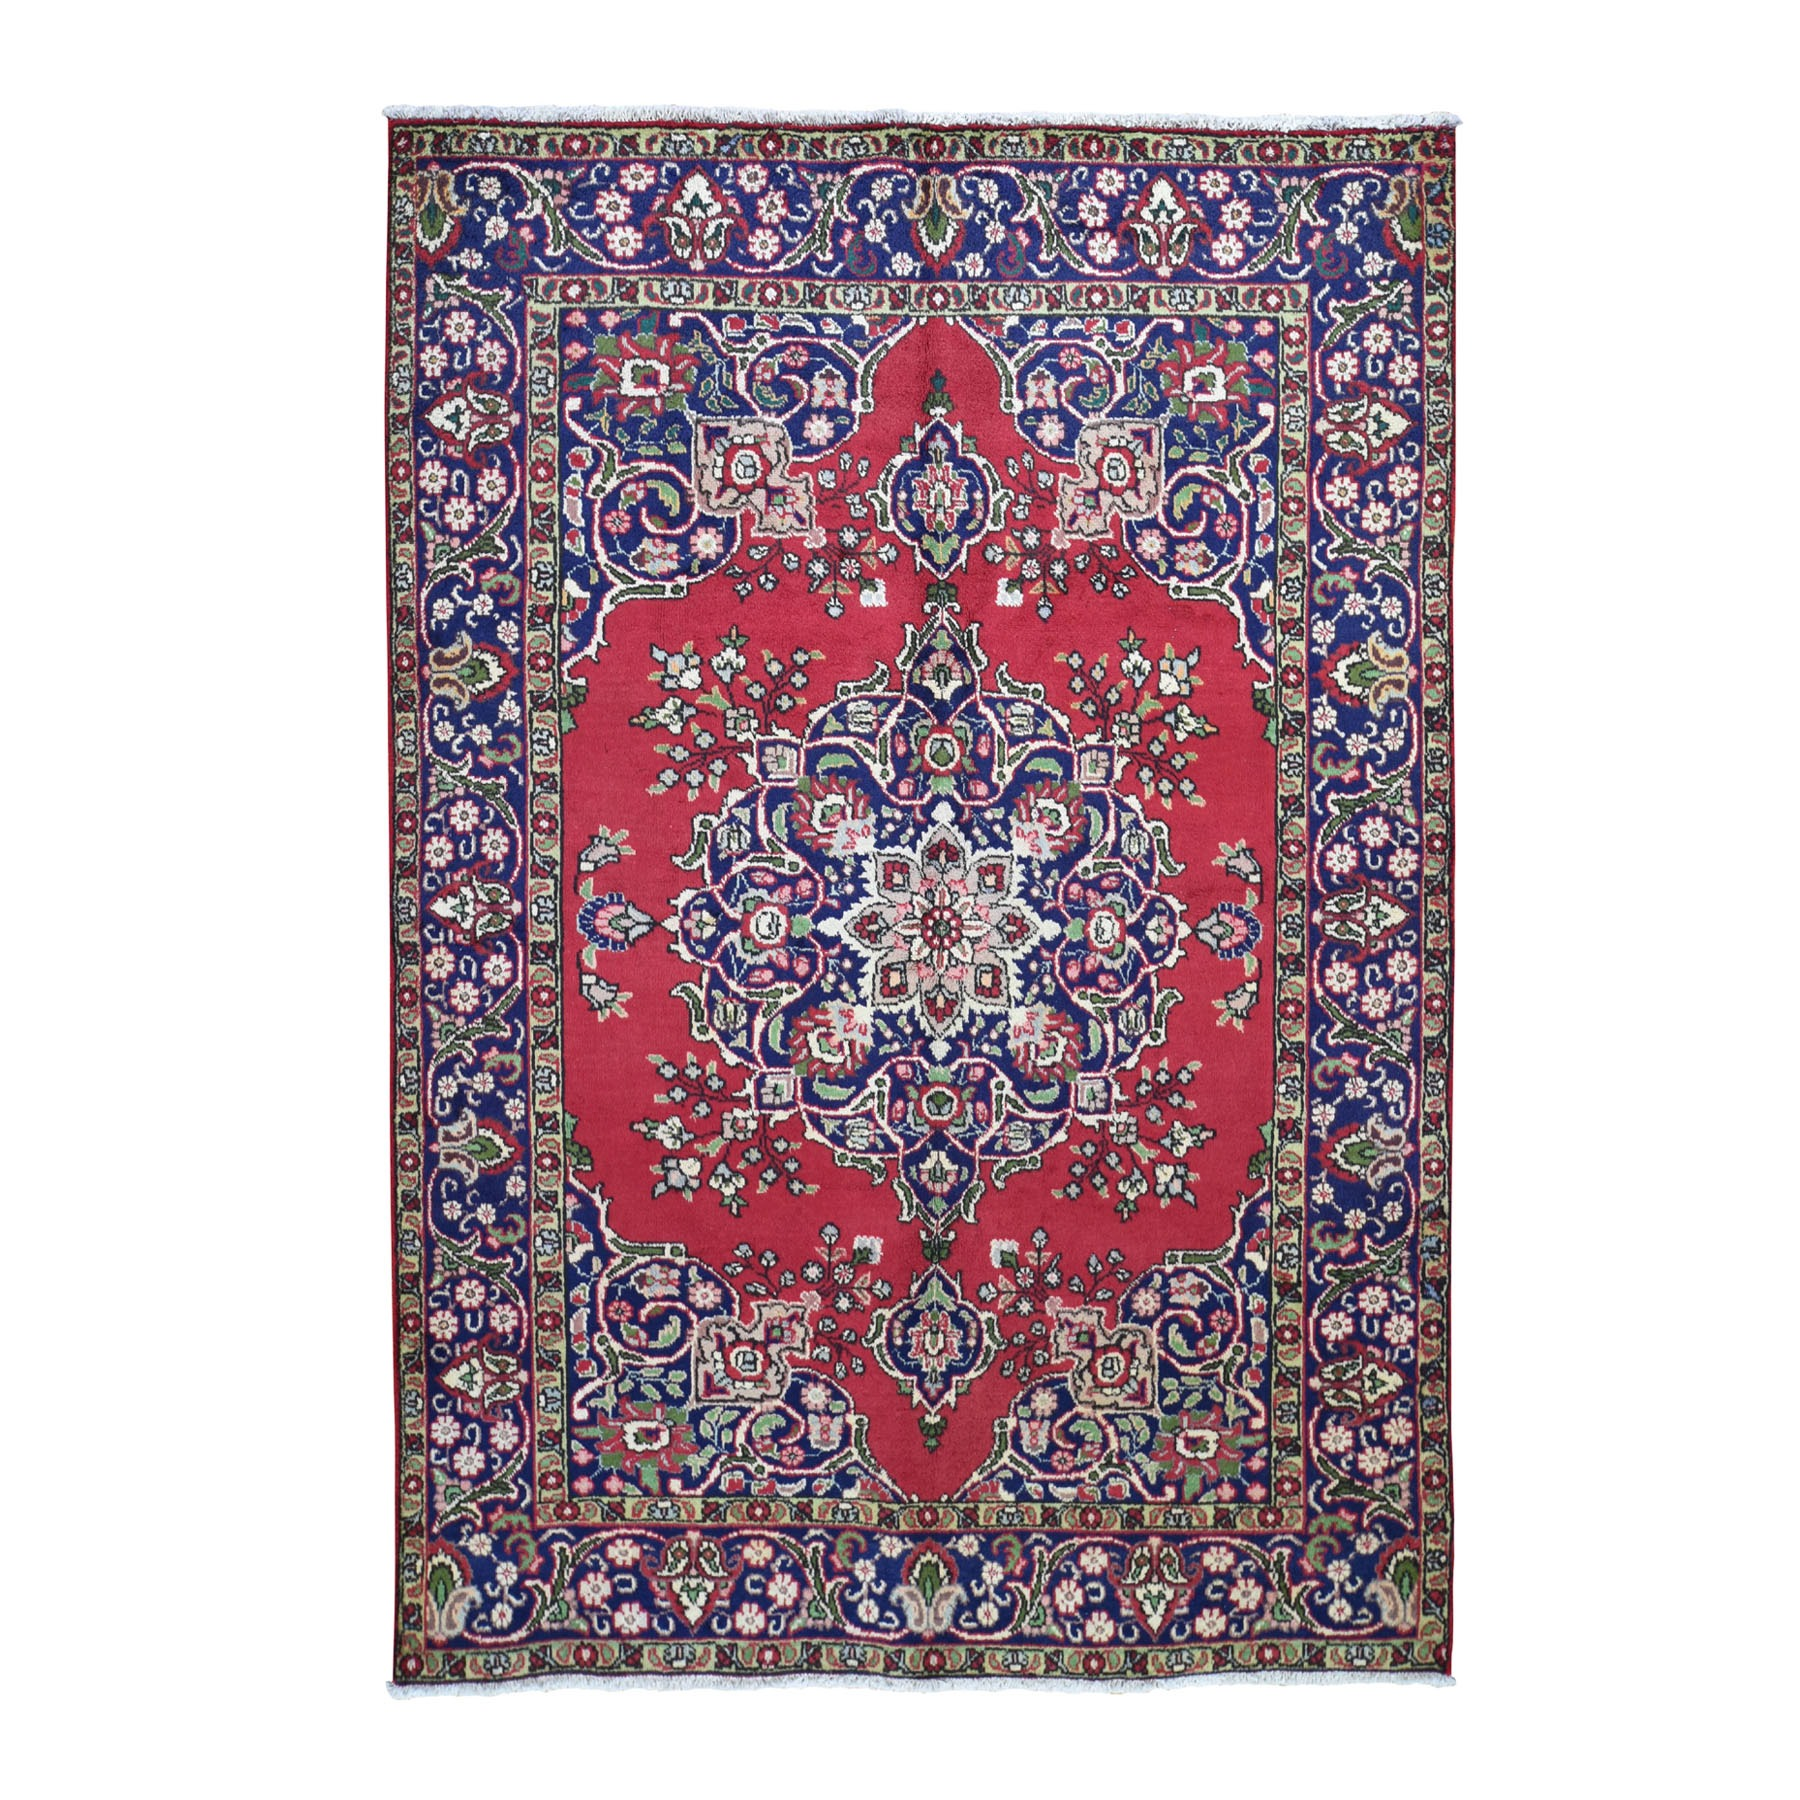 """6'6""""X9' Red Semi Antique Persian Tabriz Pure Wool Exc Condition Hand Knotted Oriental Rug moad8abb"""